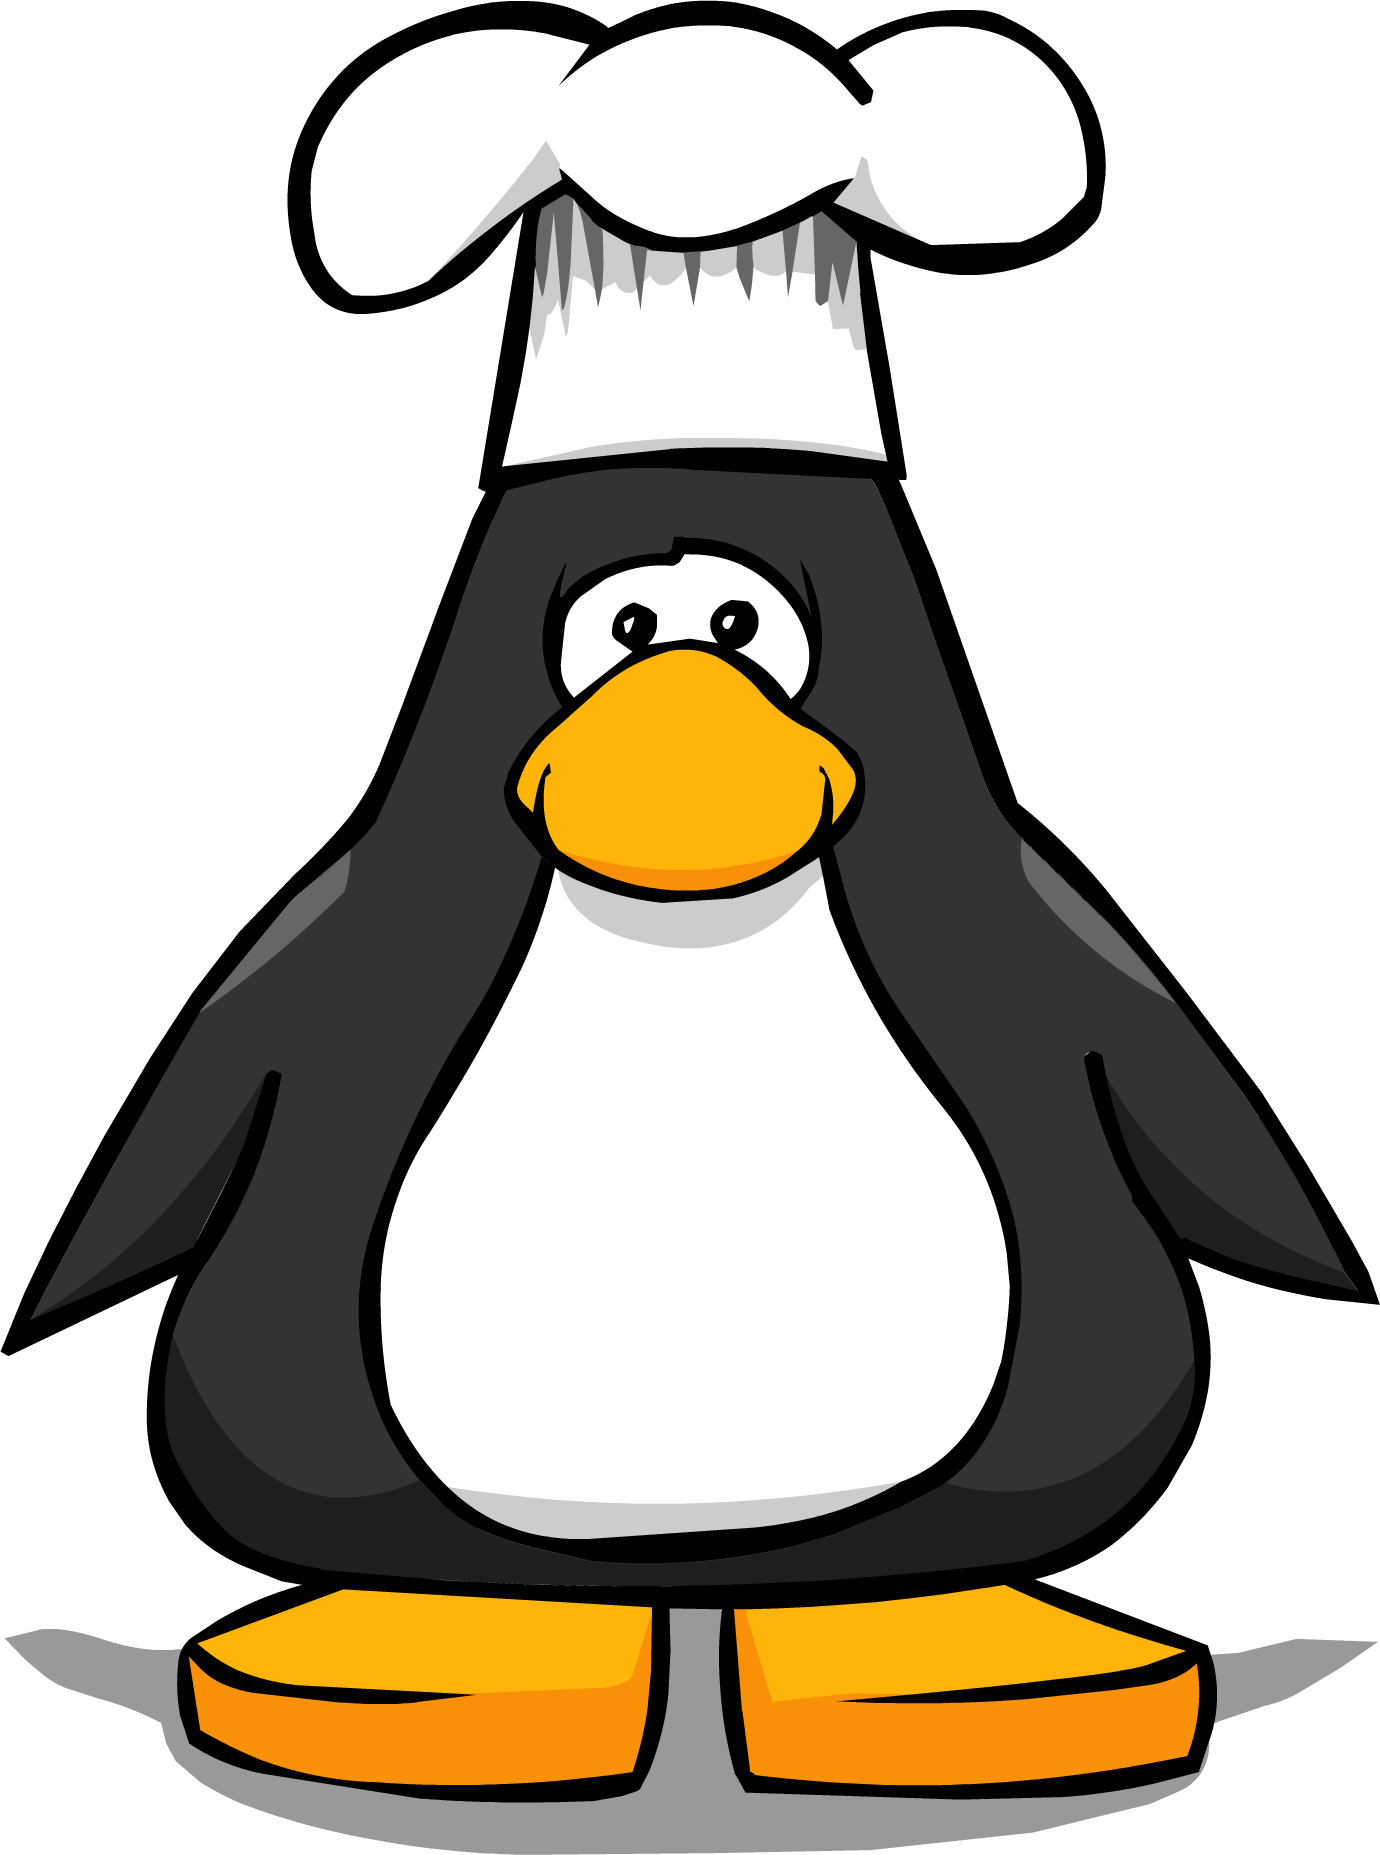 Mask clipart penguin. Chef hat club wiki